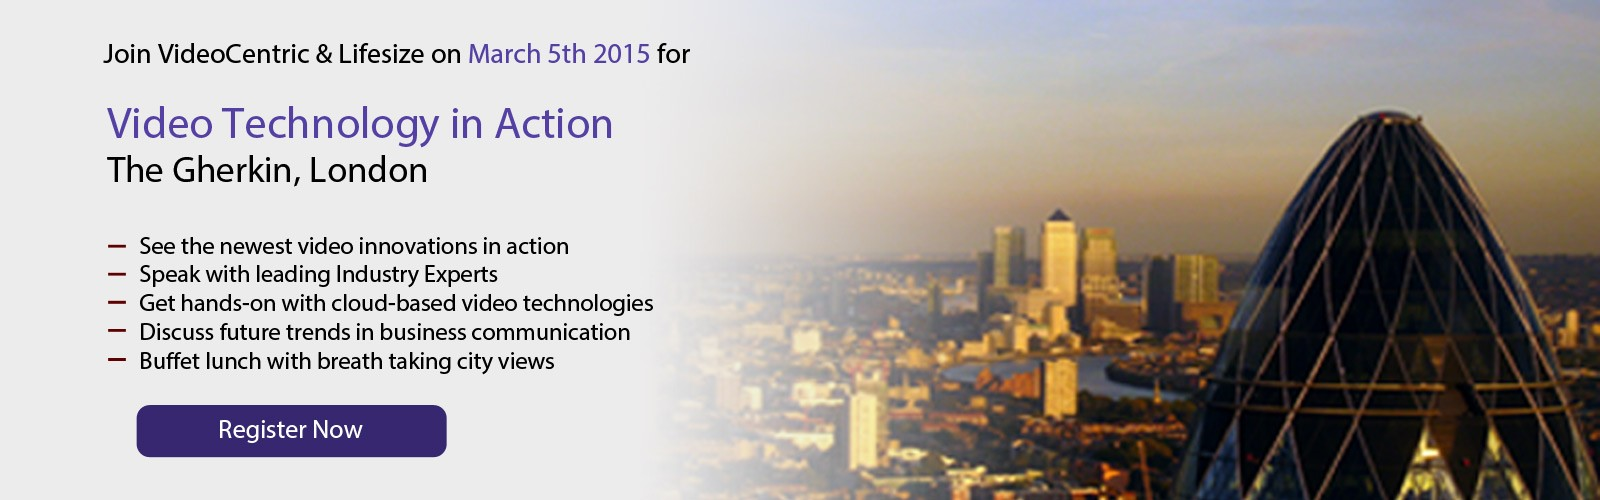 Video Technology In Action Event, Register Now